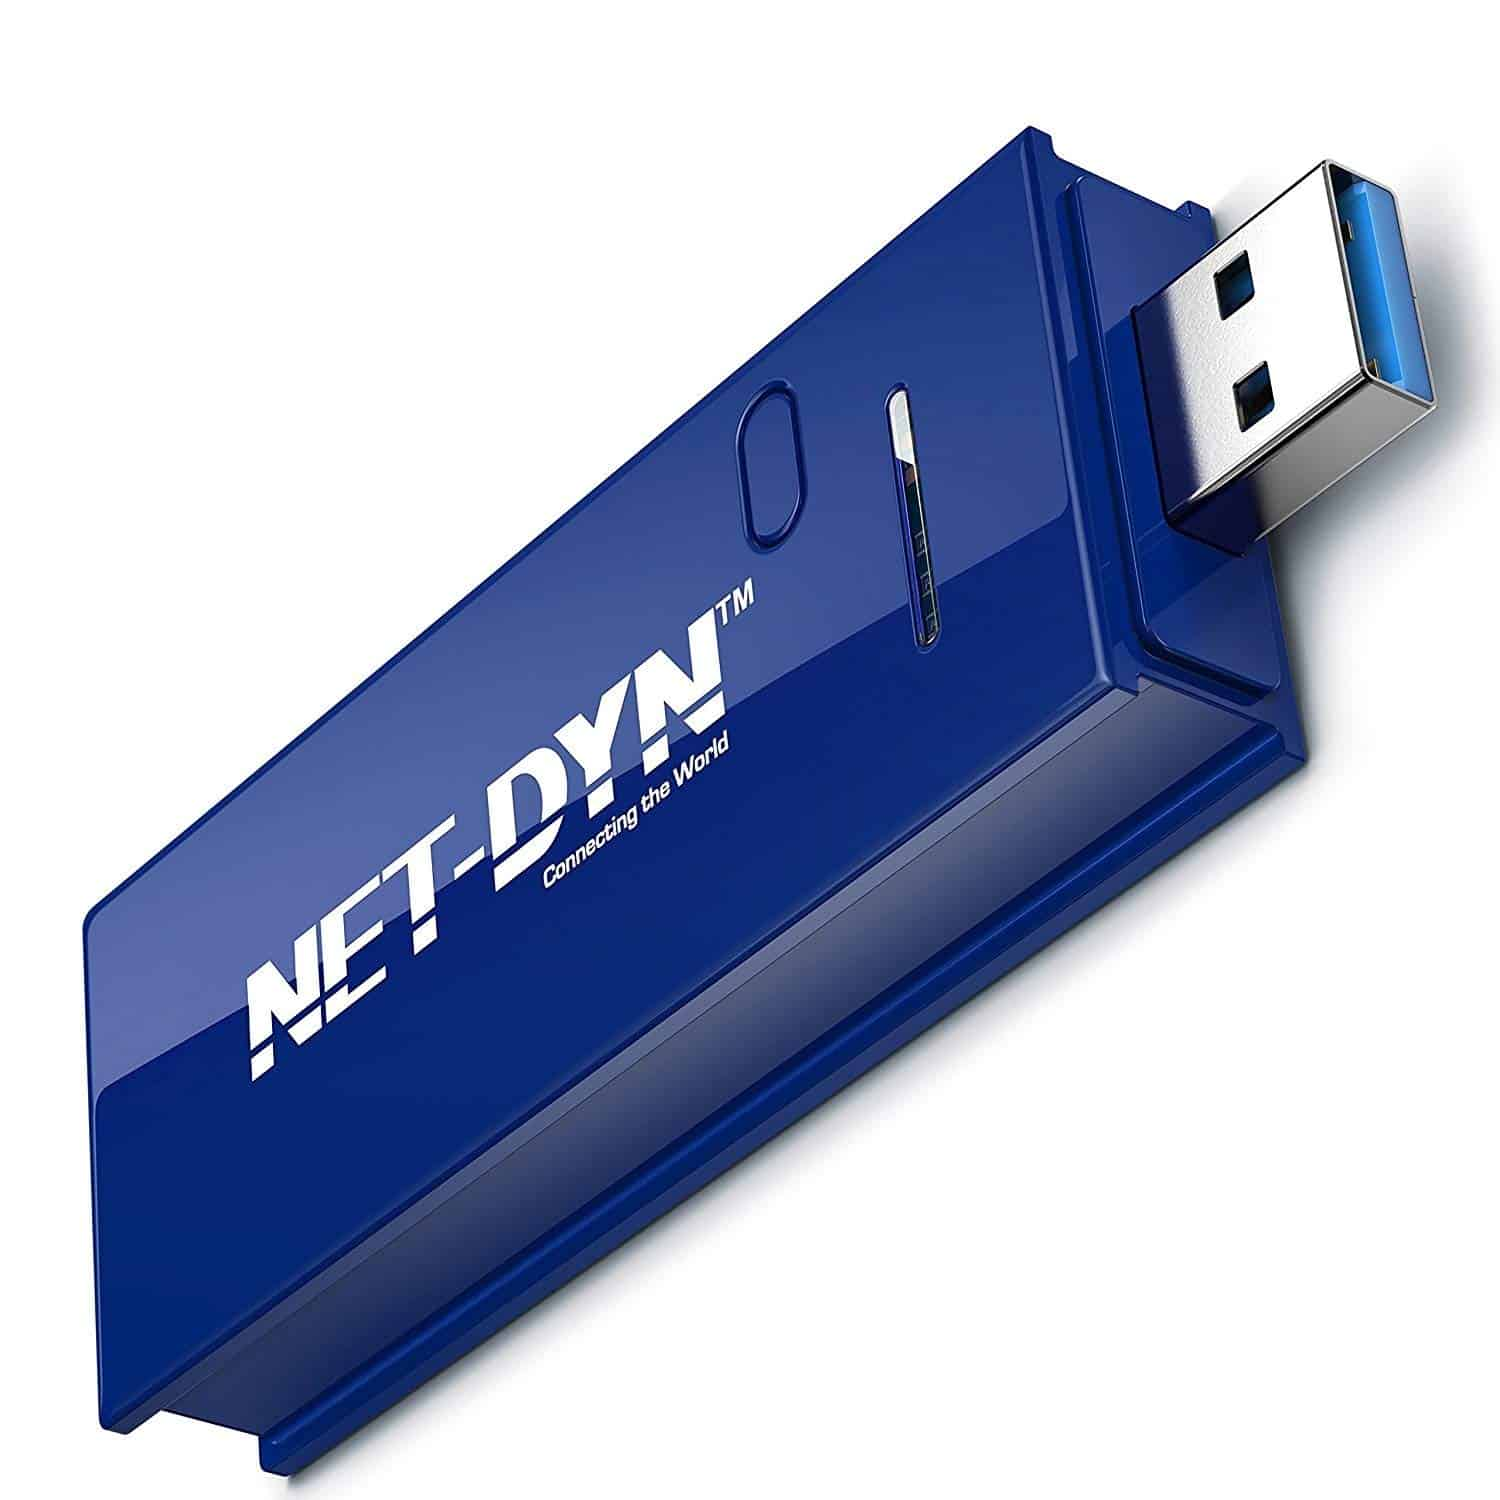 Net-DYN Wireless gaming adapter